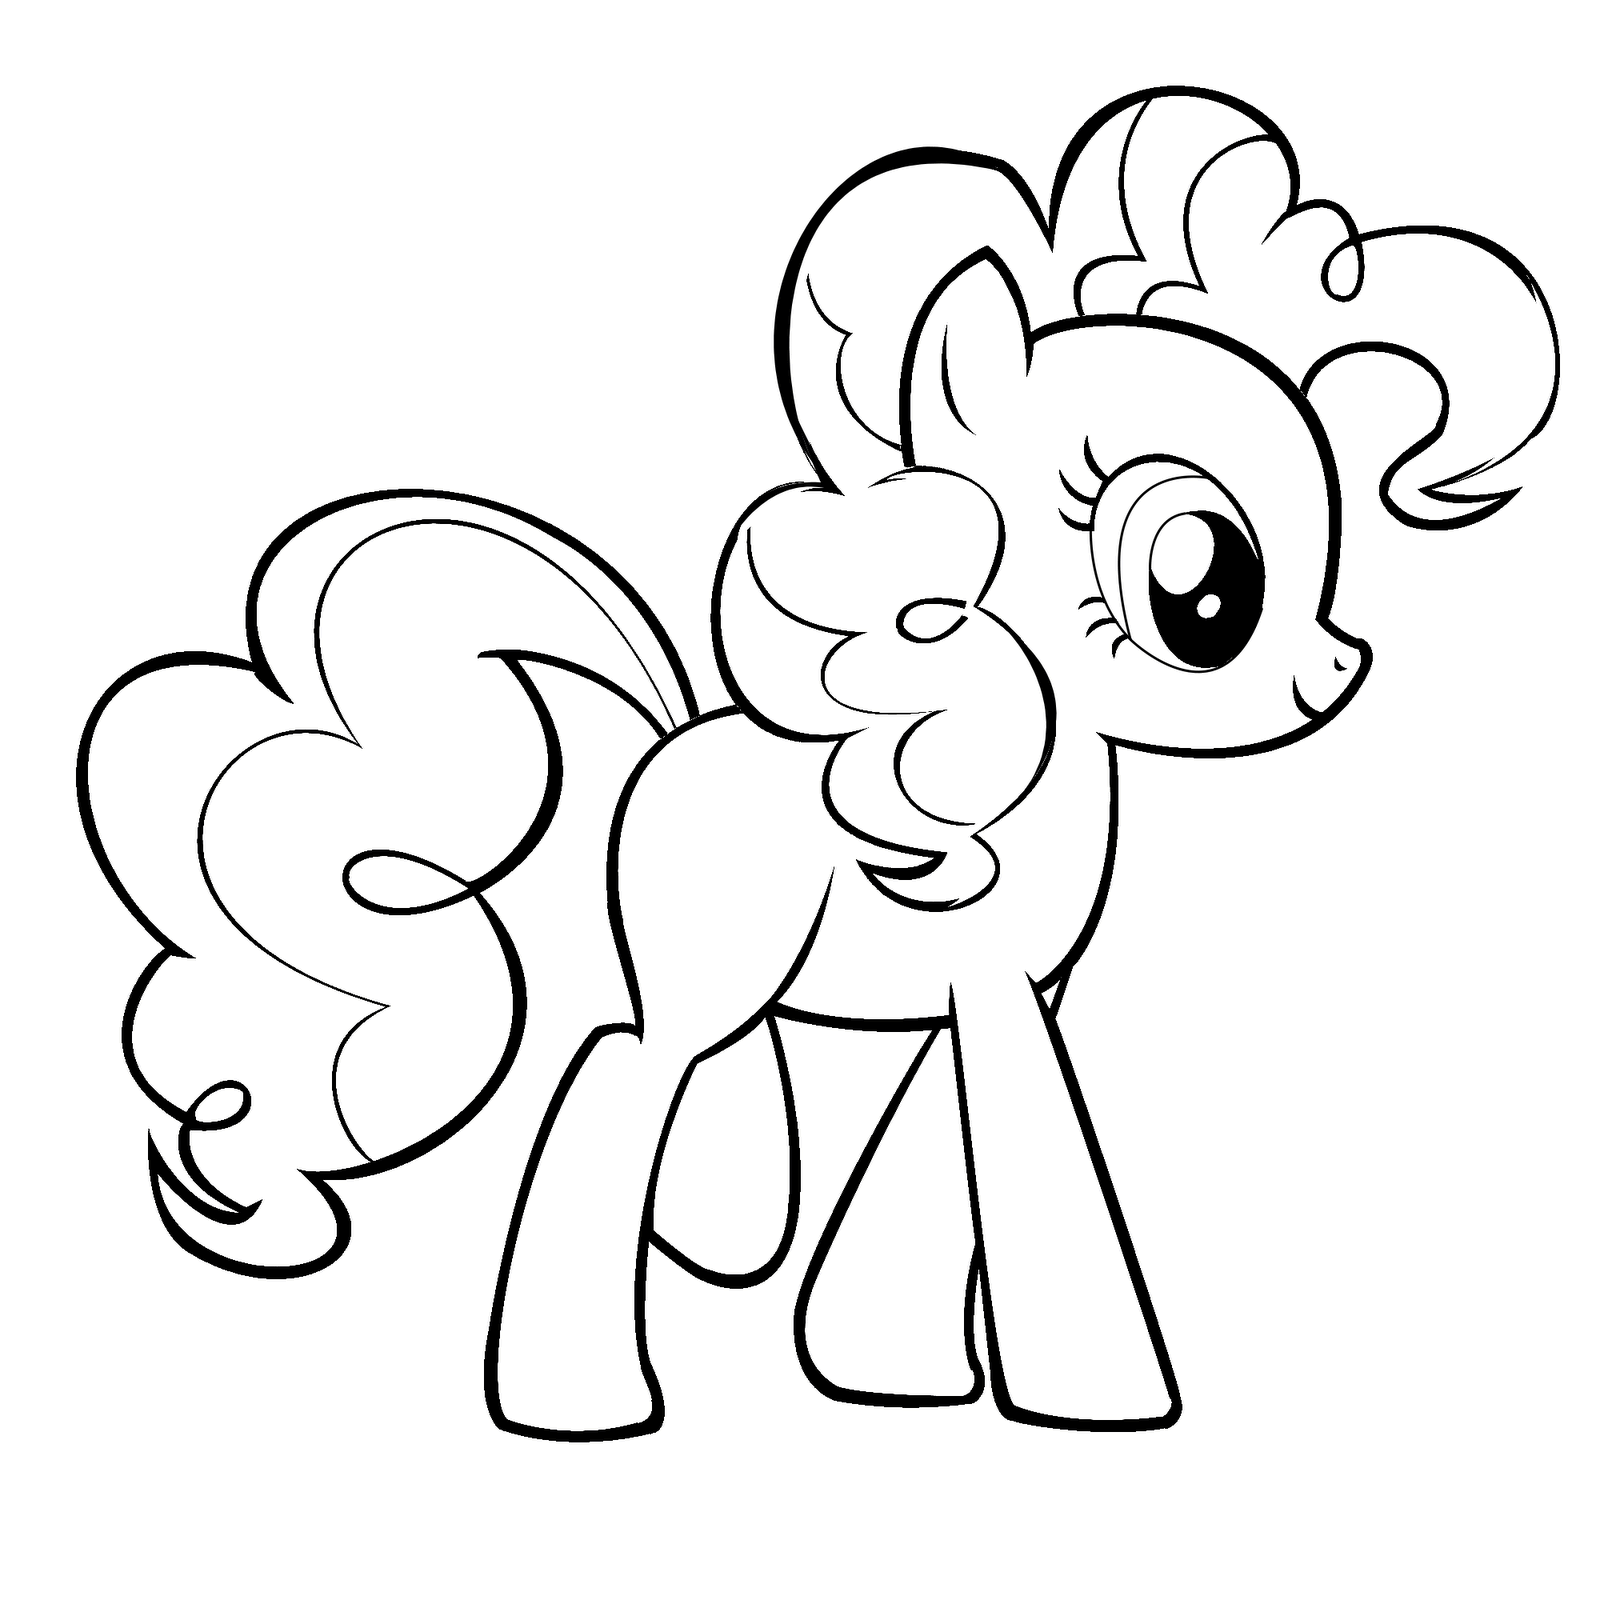 coloring sheets my little pony new cute my little pony coloring pages new coloring pages little coloring pony sheets my